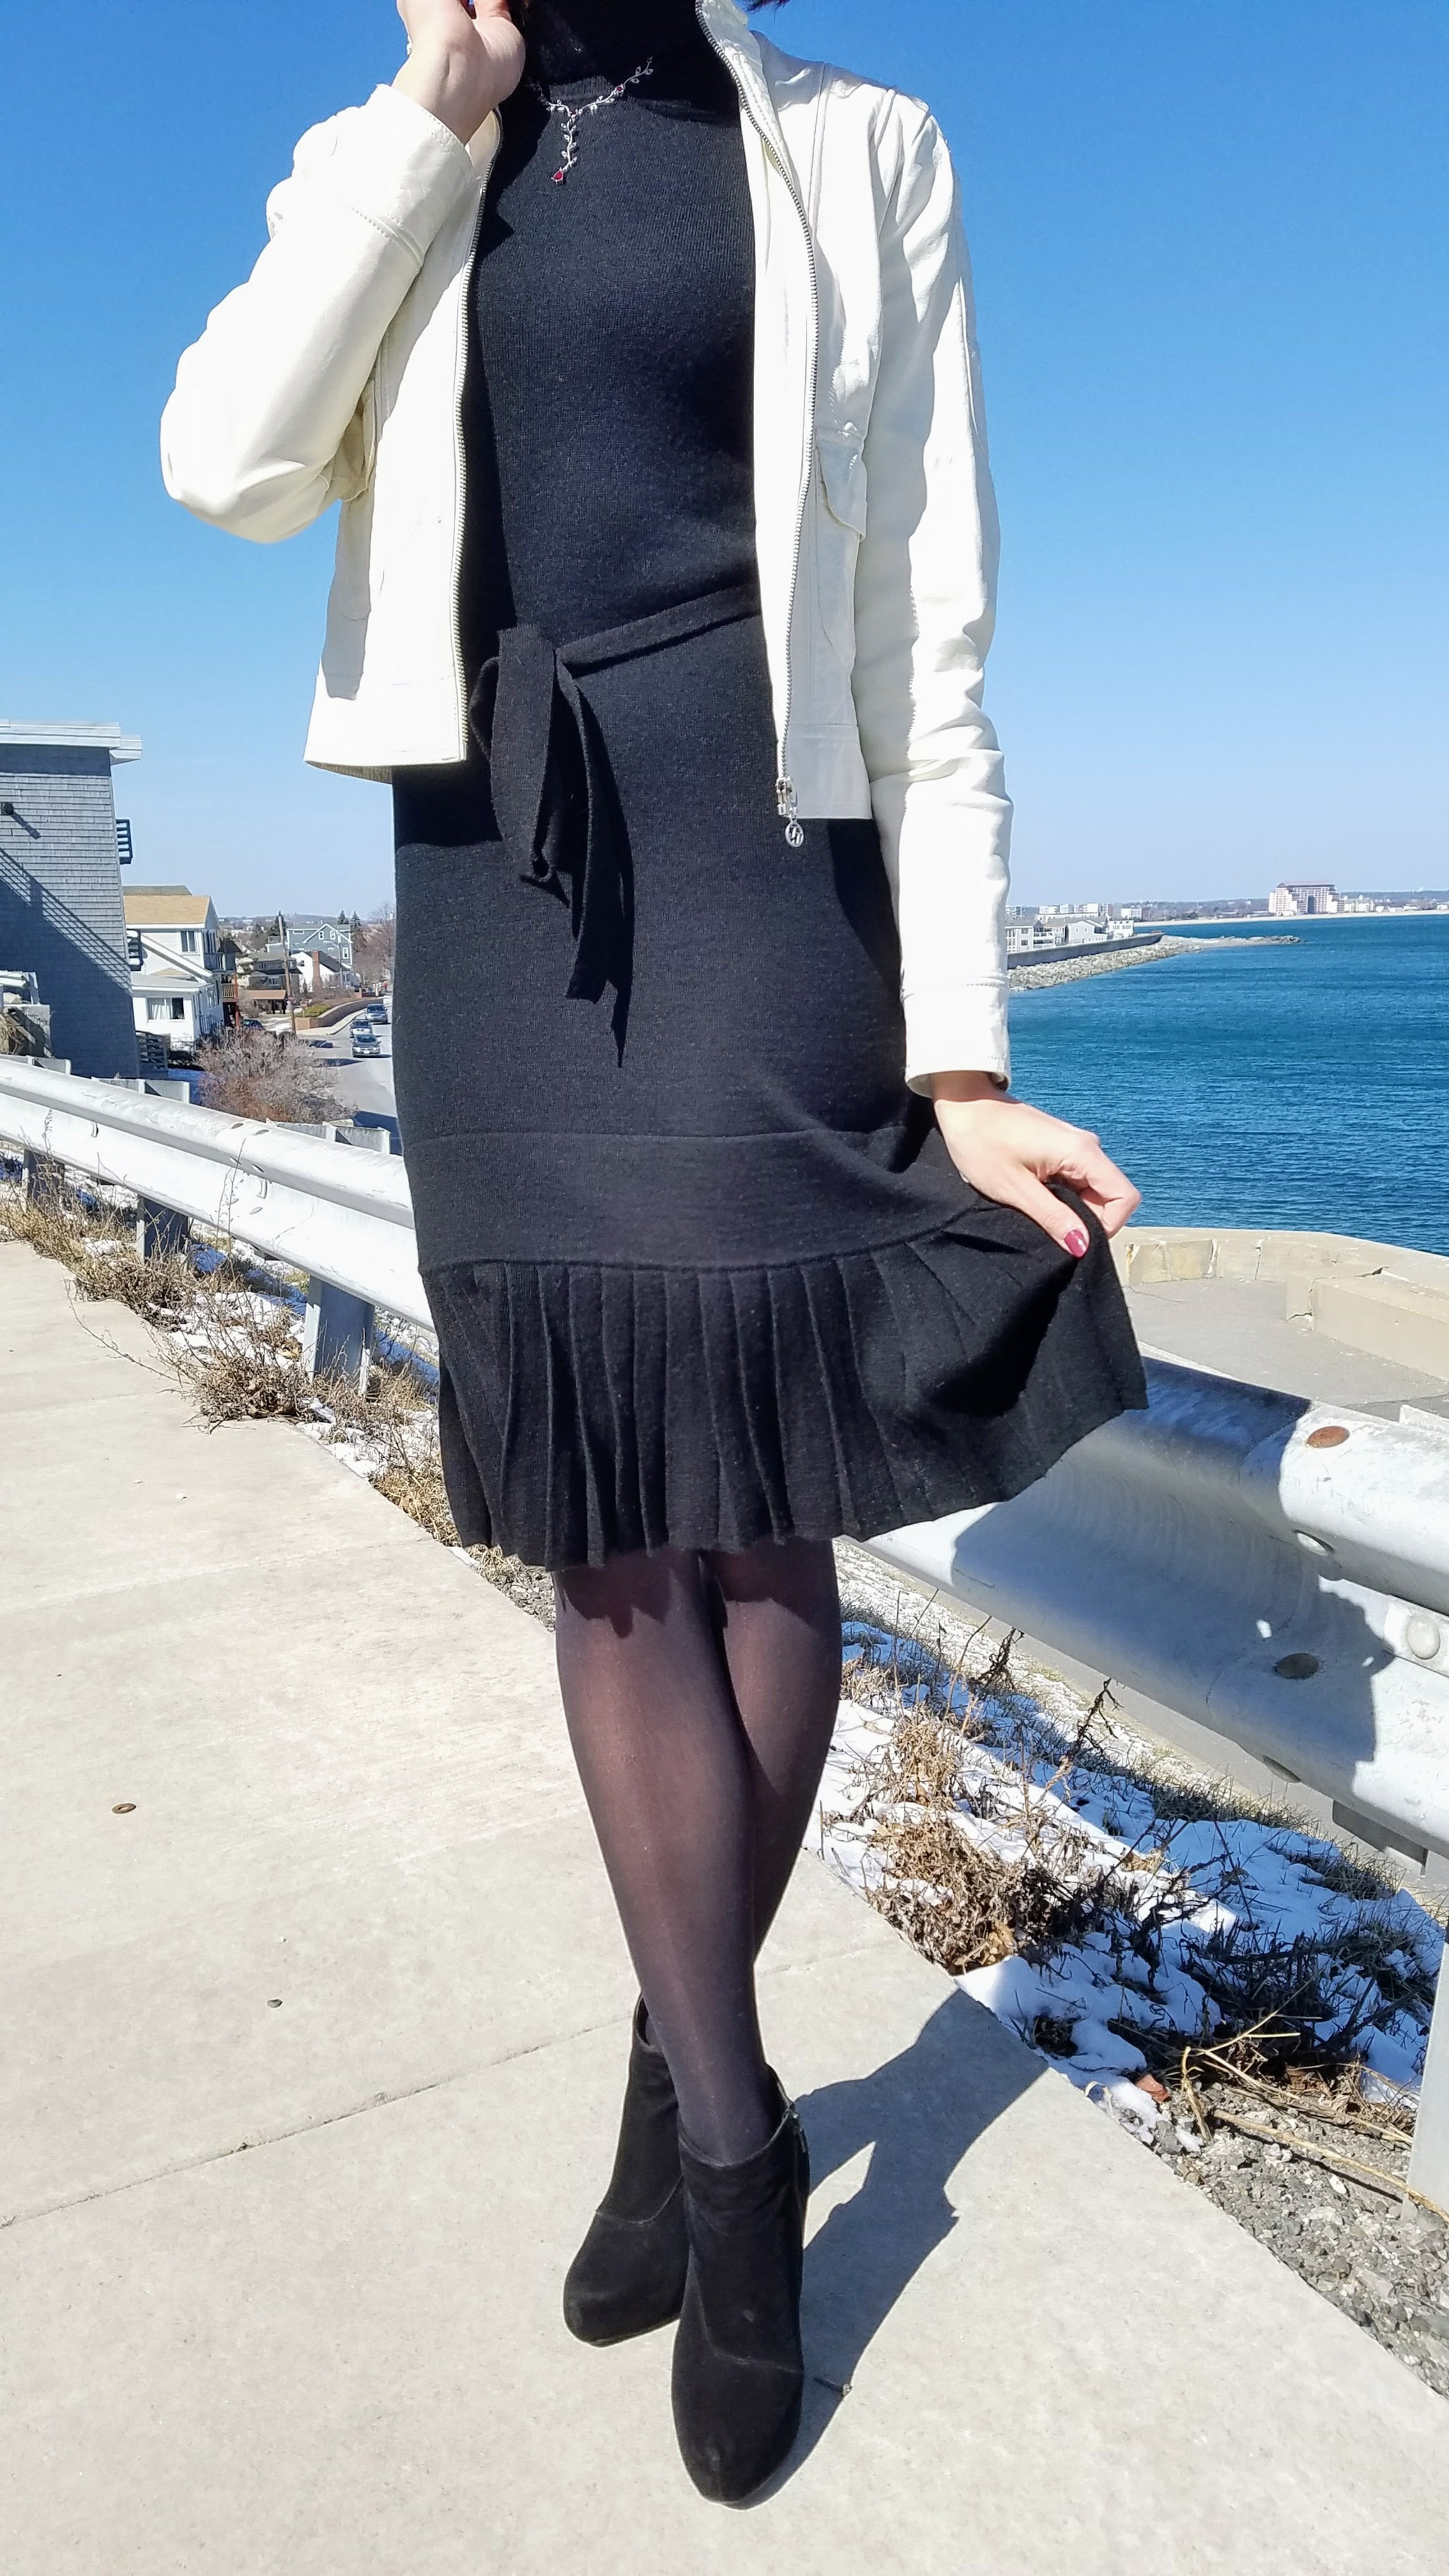 An outfit closeup. A black turtleneck dress, black tights, black ankle boots, and a white leather jacket.